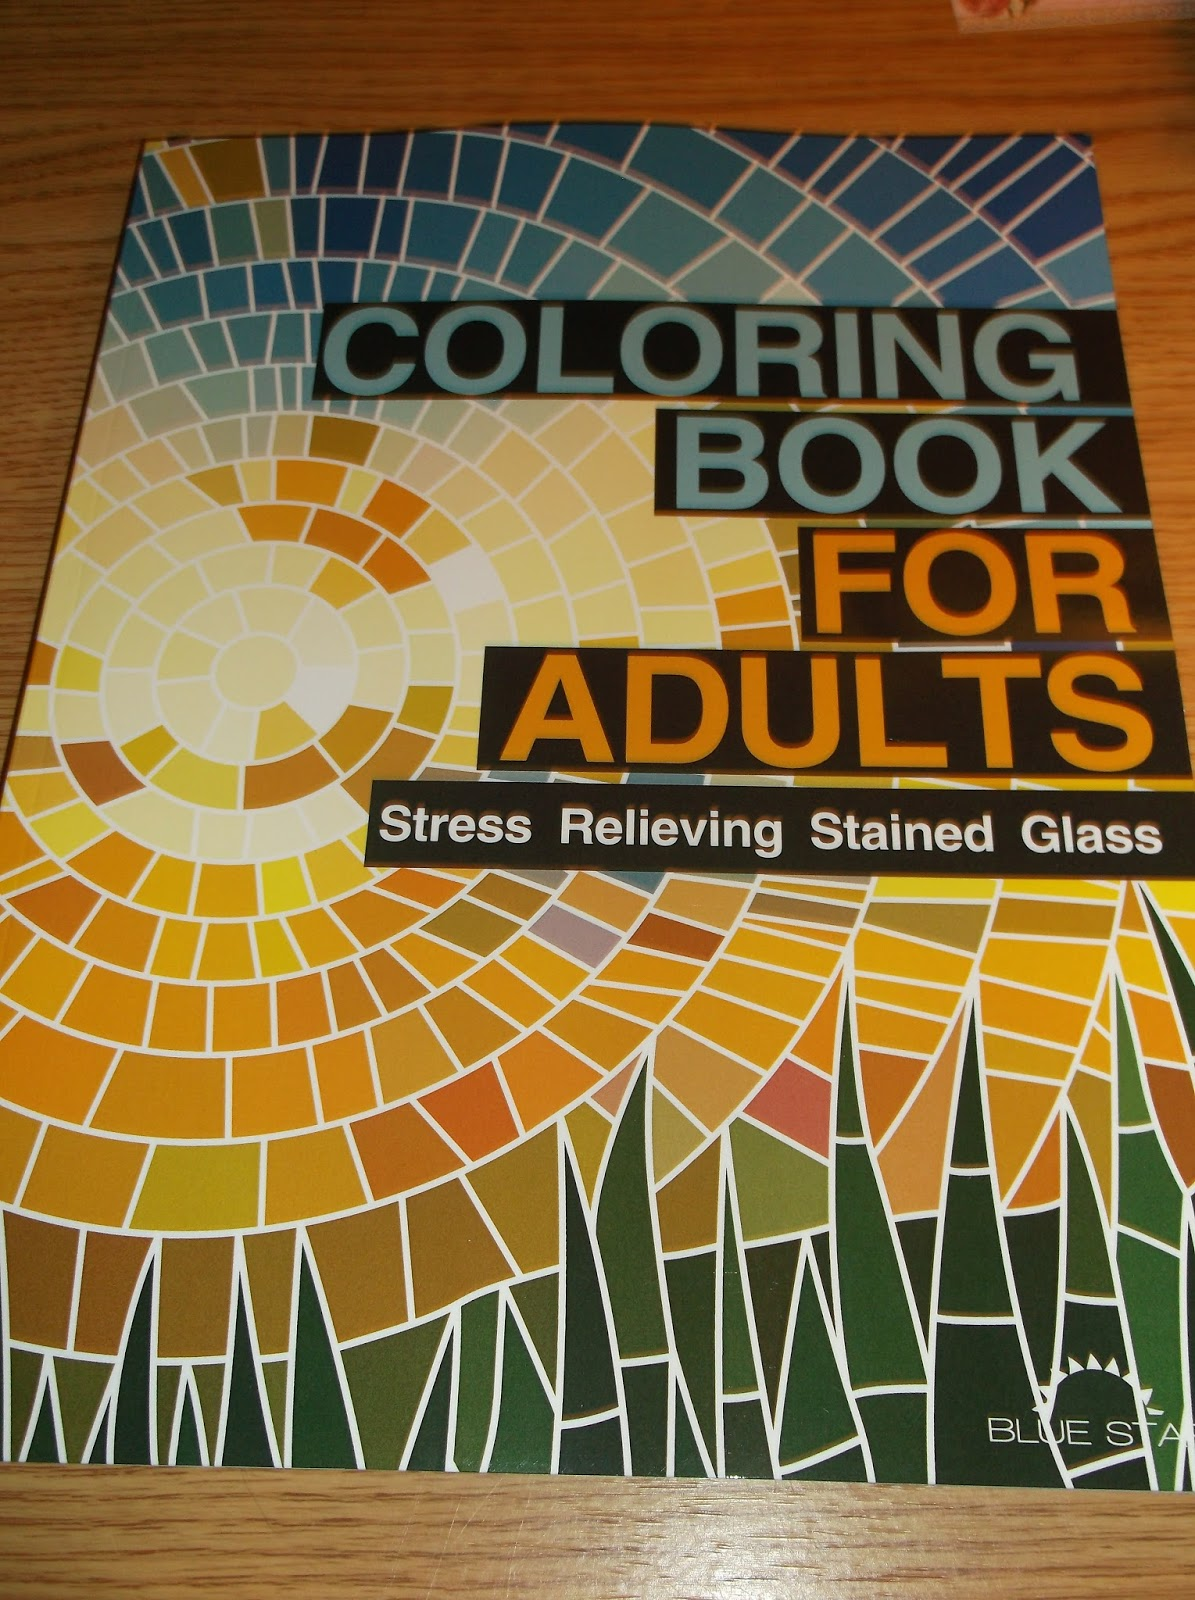 Coloring Book For Adults Stress Relieving Stained Glass Calm Your Mind And Free Inner Creator With This